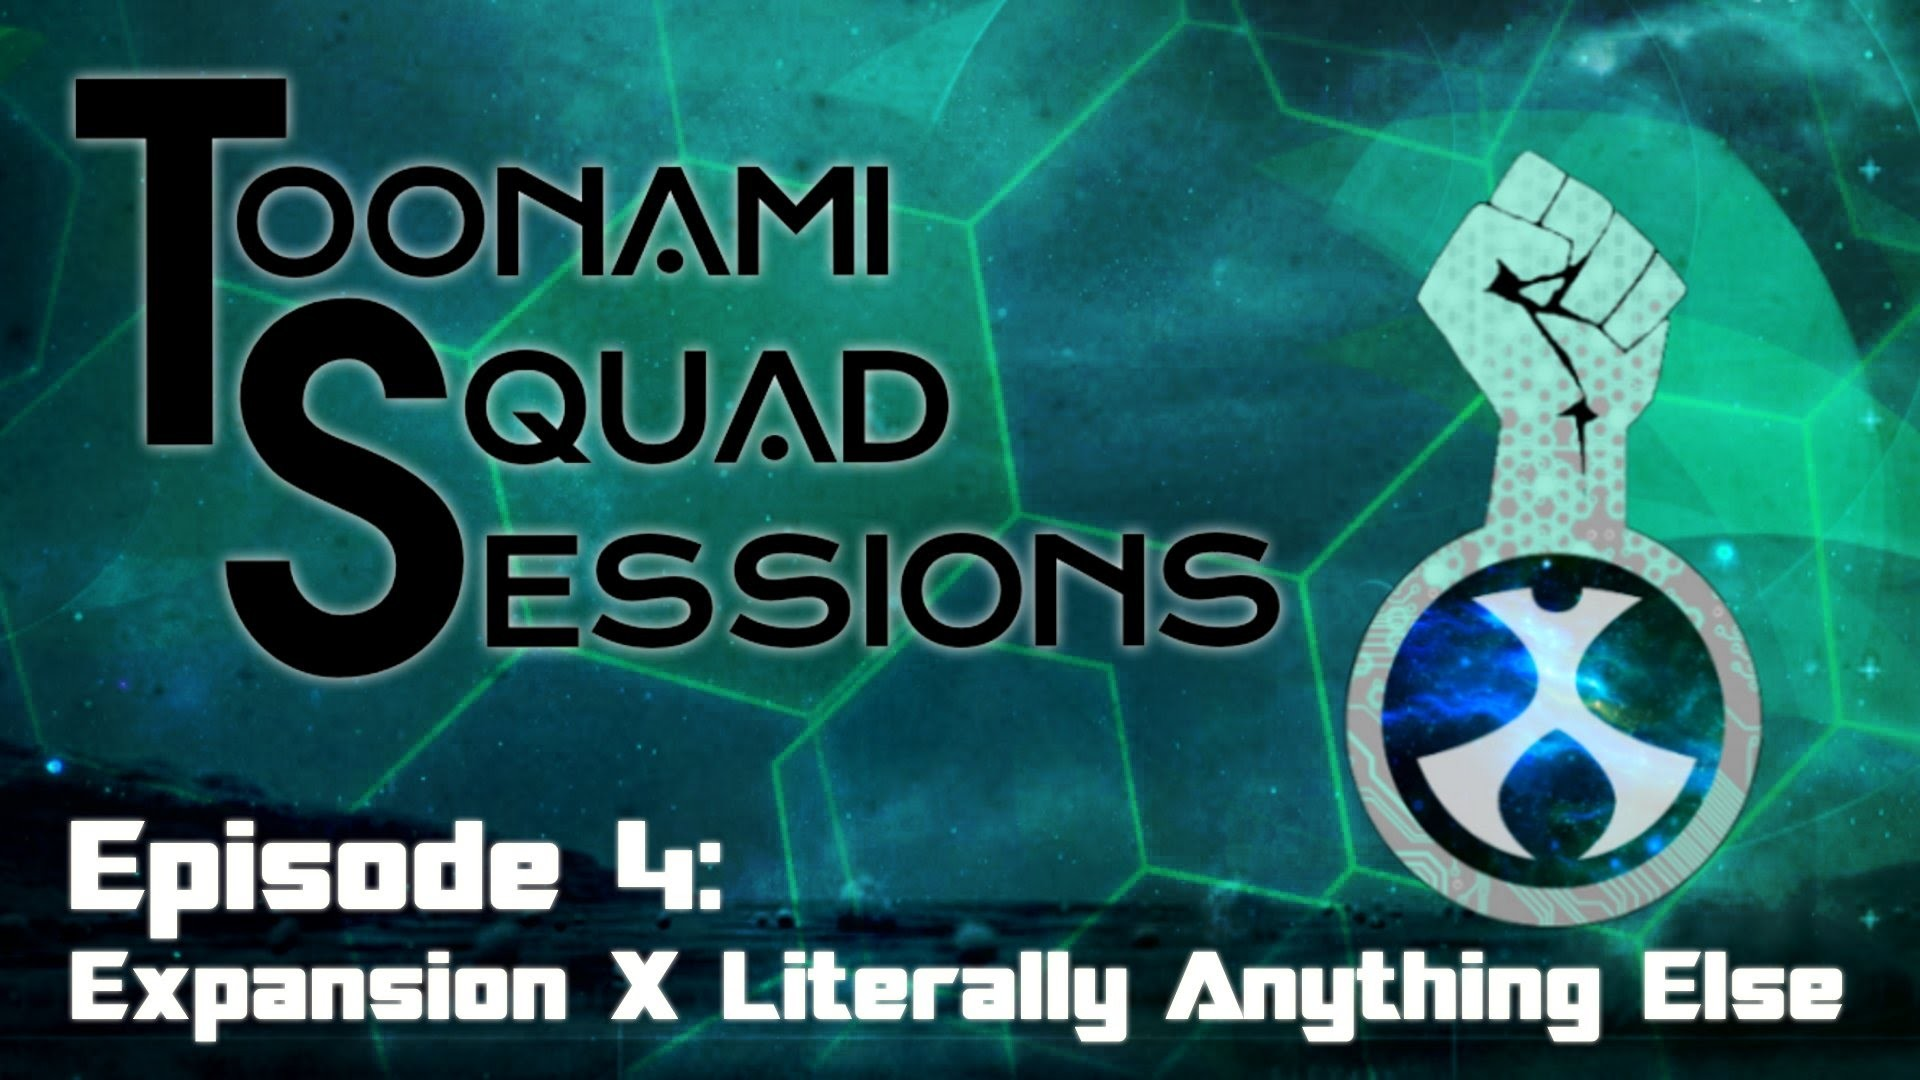 1920x1080 Toonami Squad Podcast Sessions: Episode 4 Expansion X & Literally Anything  Else